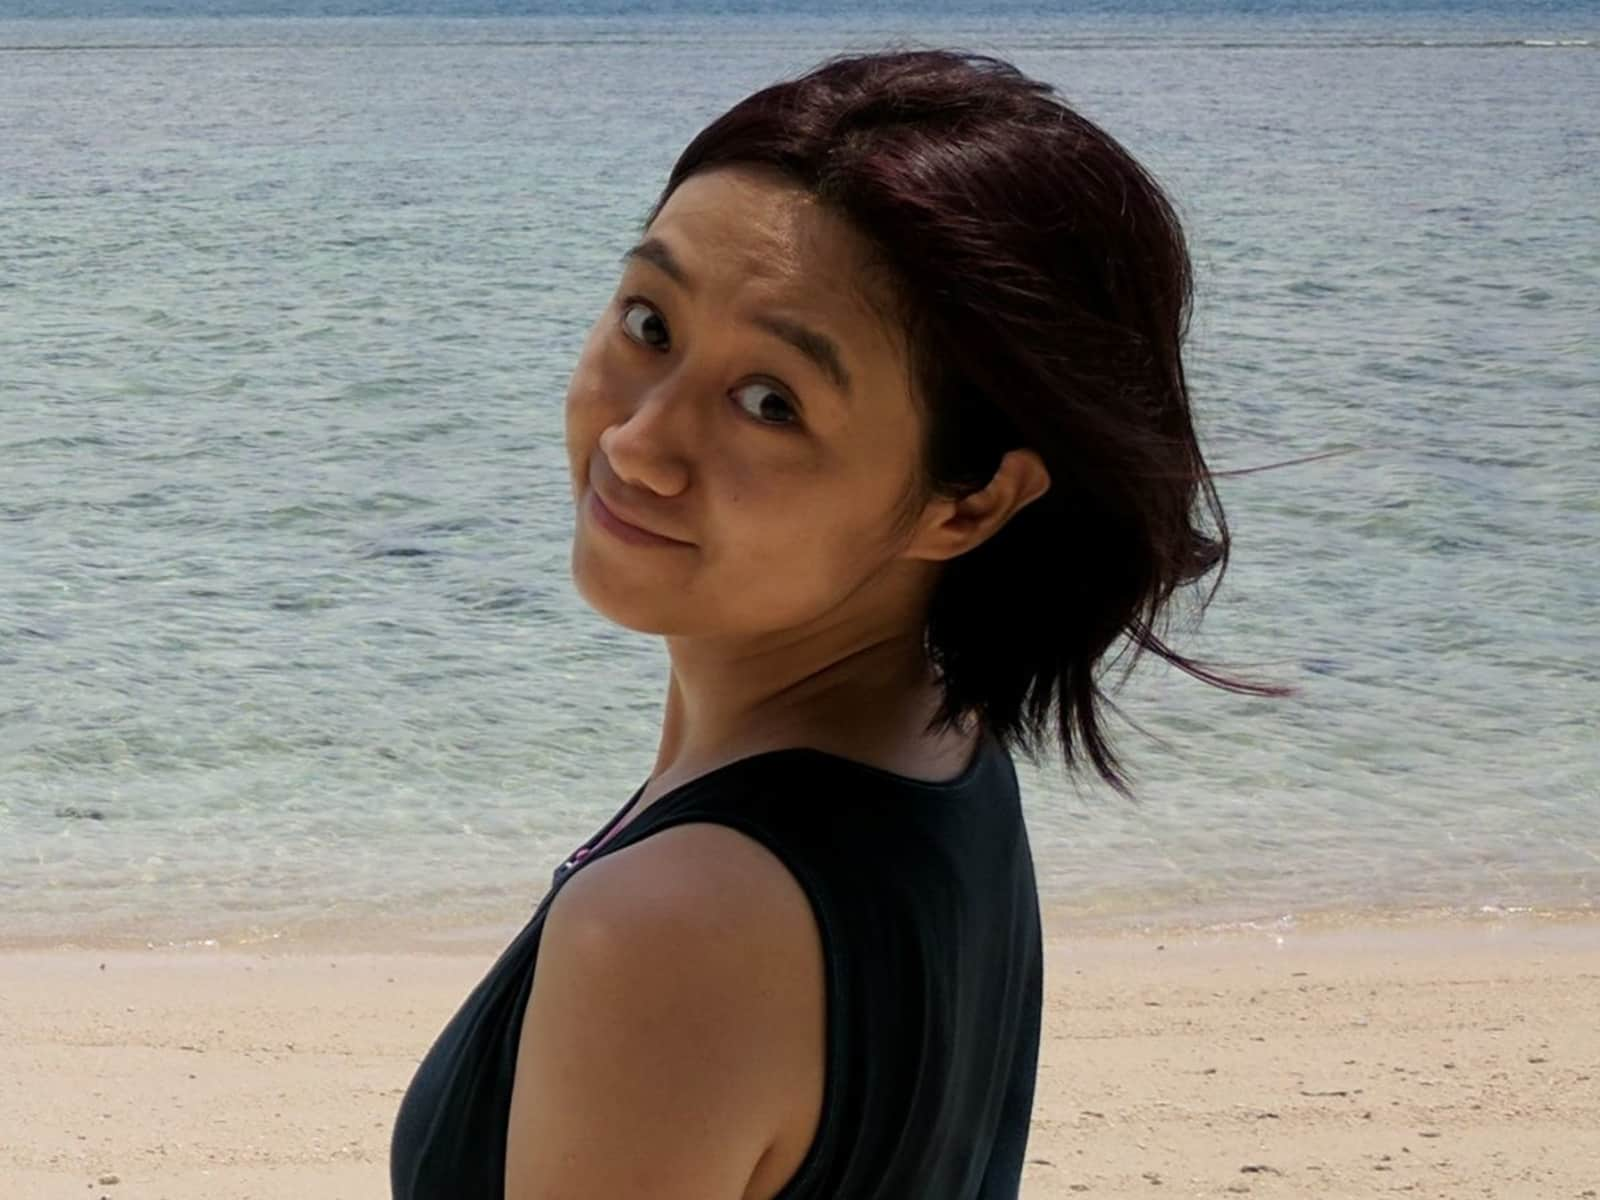 Maggie from Singapore, Singapore